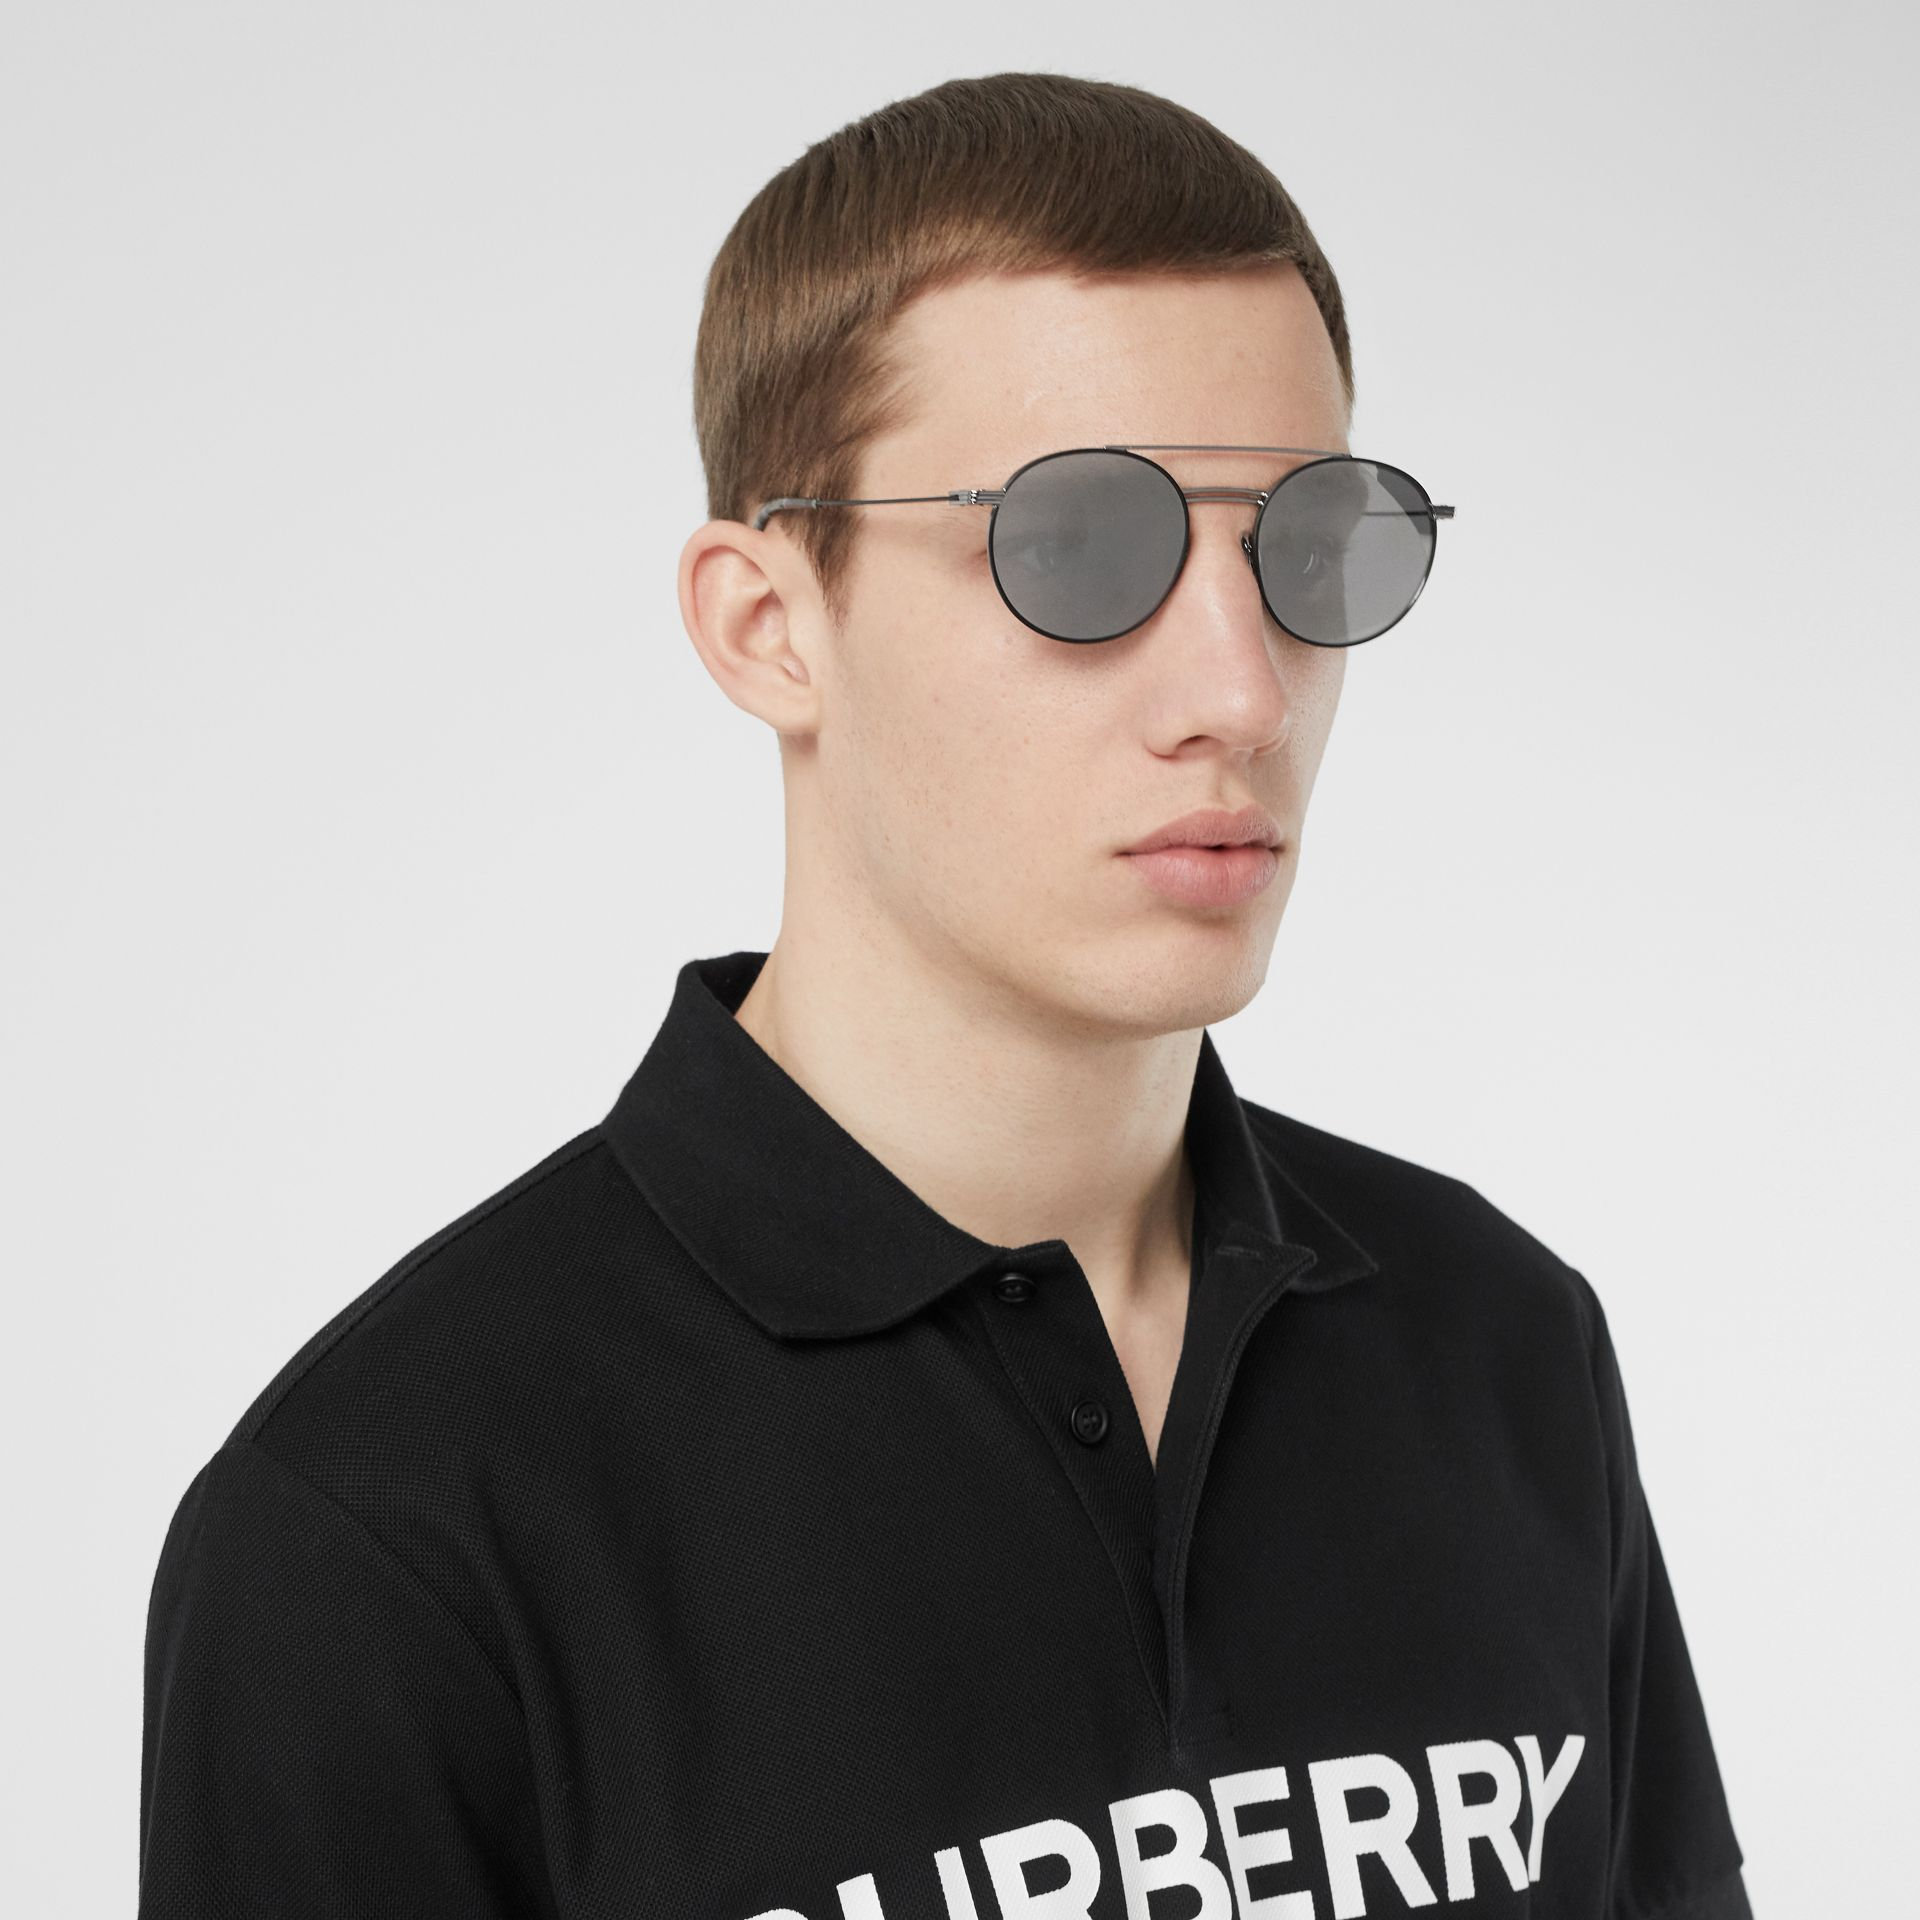 Top Bar Detail Round Frame Sunglasses in Gunmetal - Men | Burberry United States - gallery image 2